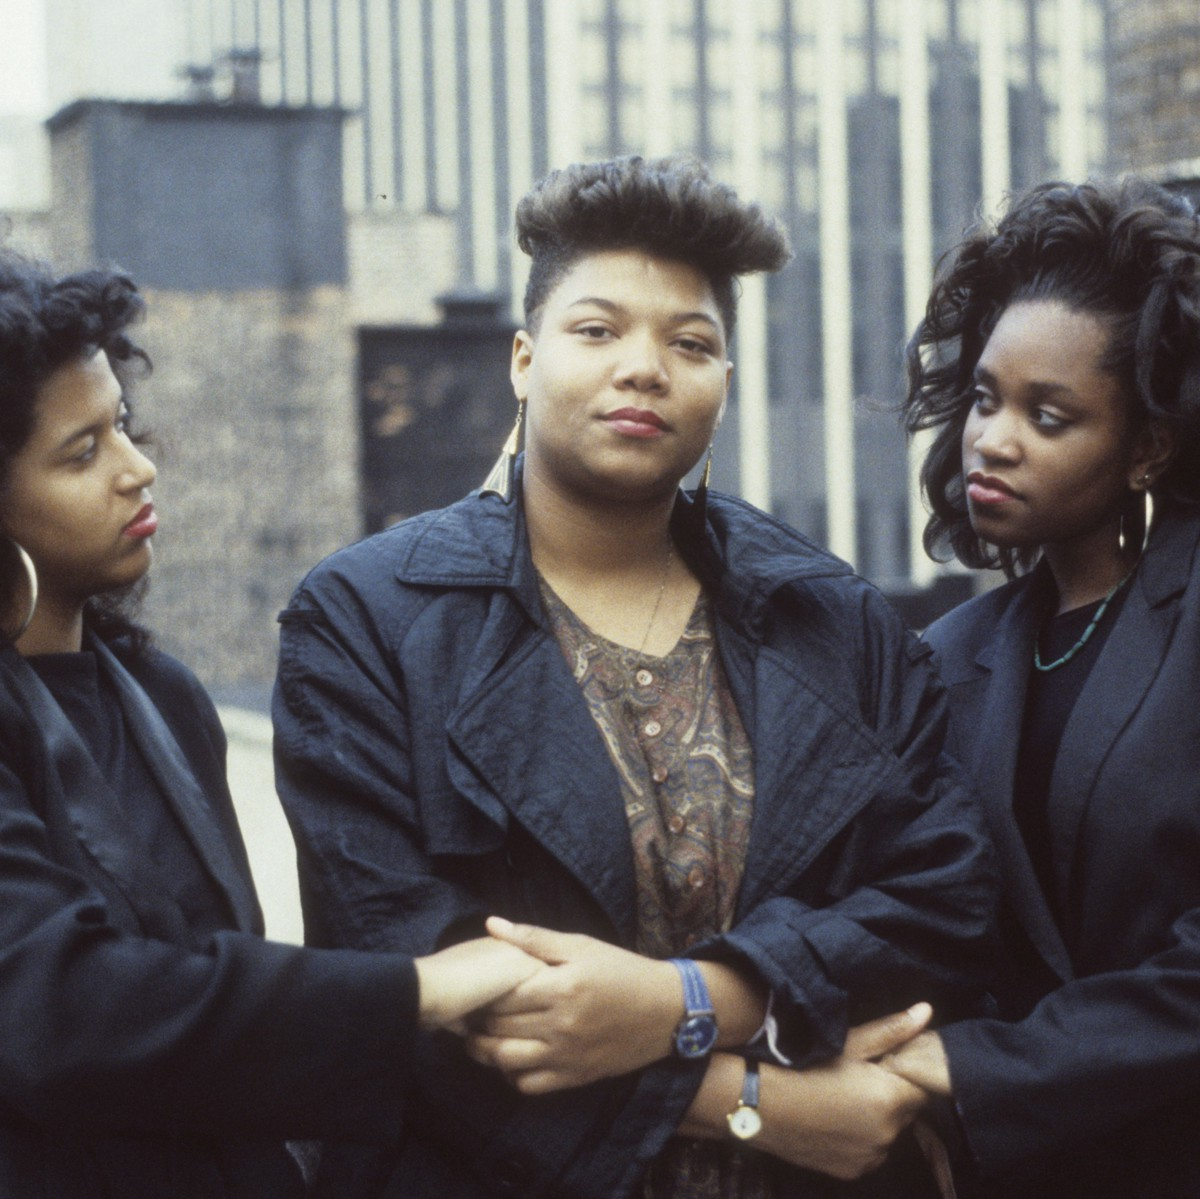 How Queen Latifah's Debut Album Sparked Joy at a Time When Everything Burned